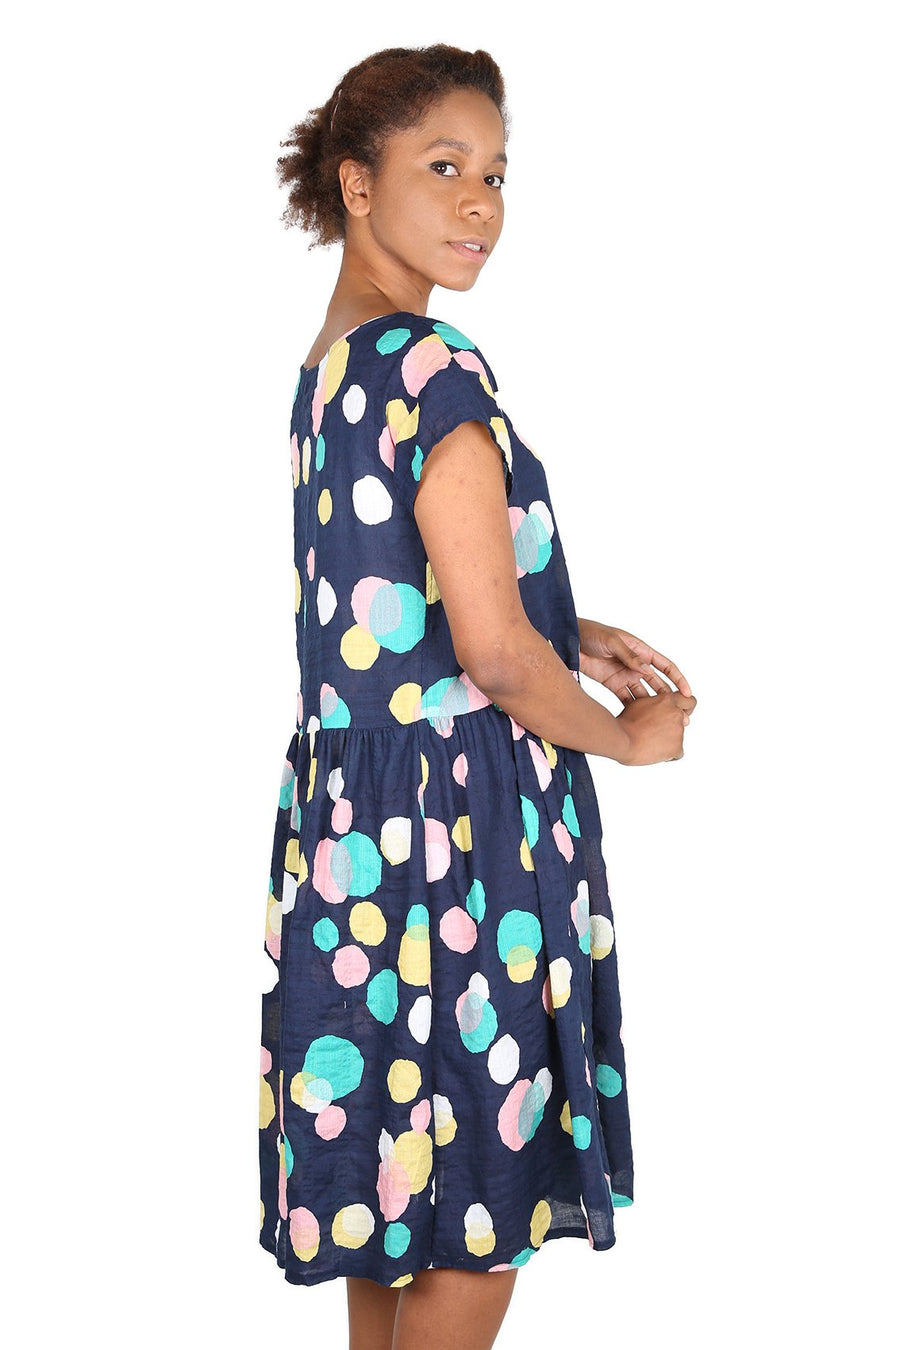 Balloons Seer Dress - Shop Online At Mookah - mookah.com.au